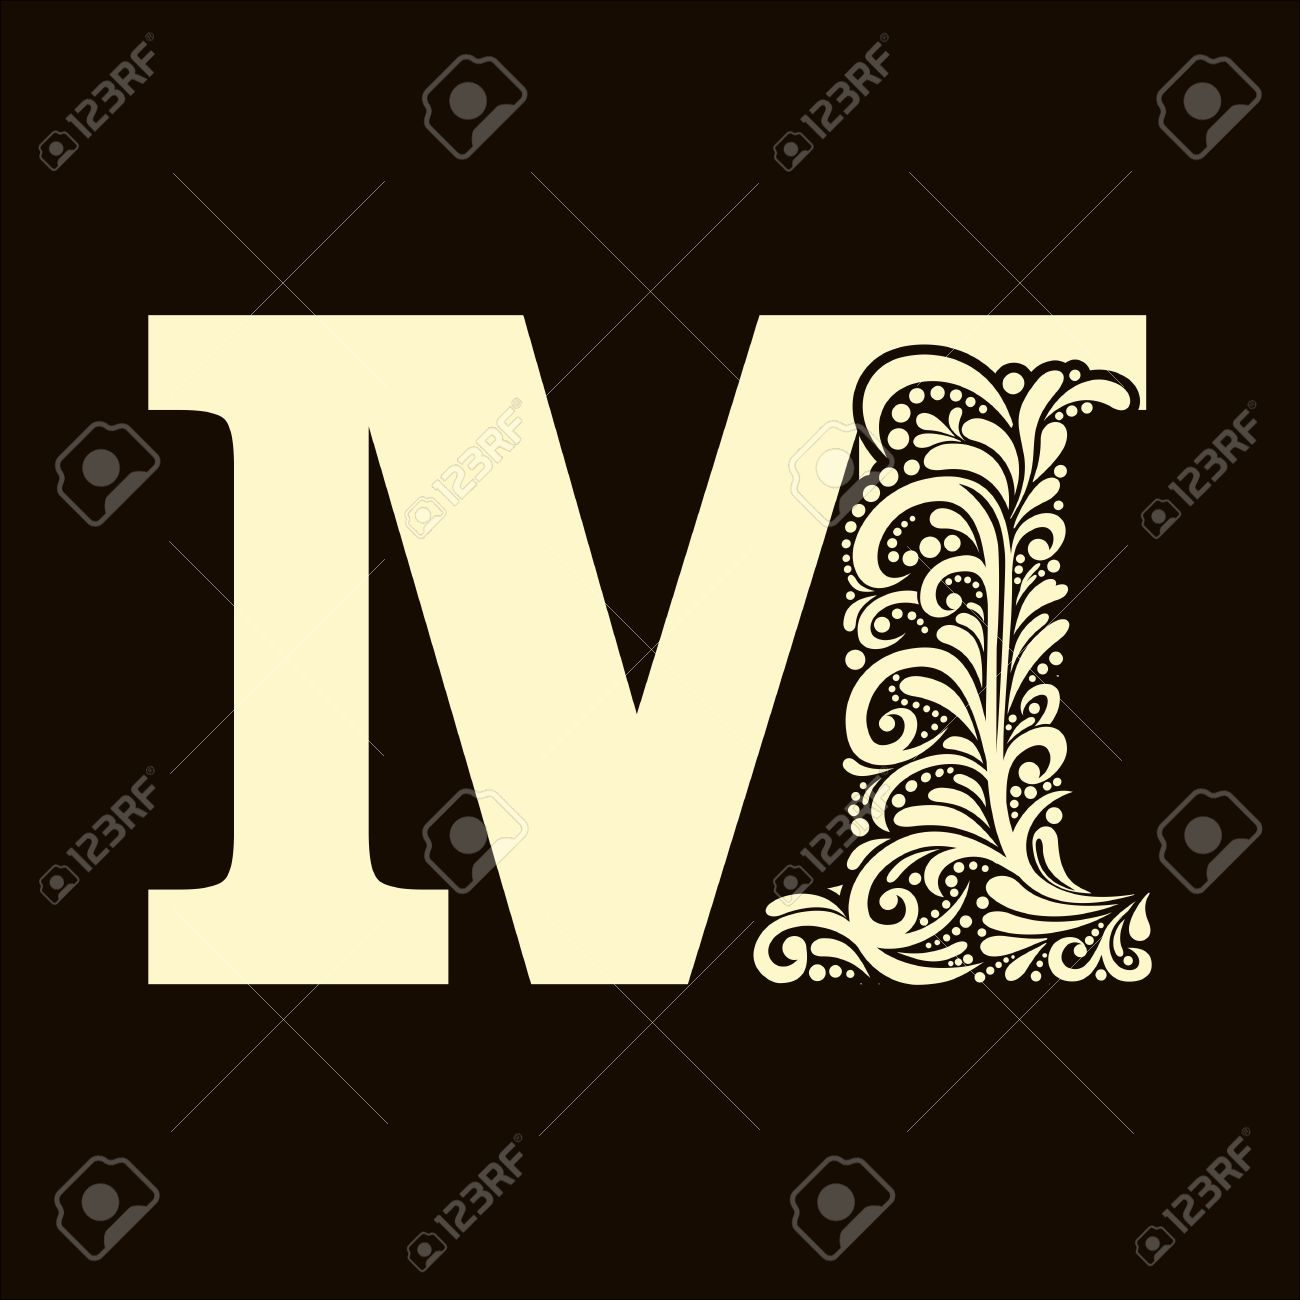 Elegant Capital Letter M In The Style Of Baroque To Use Monograms Logos